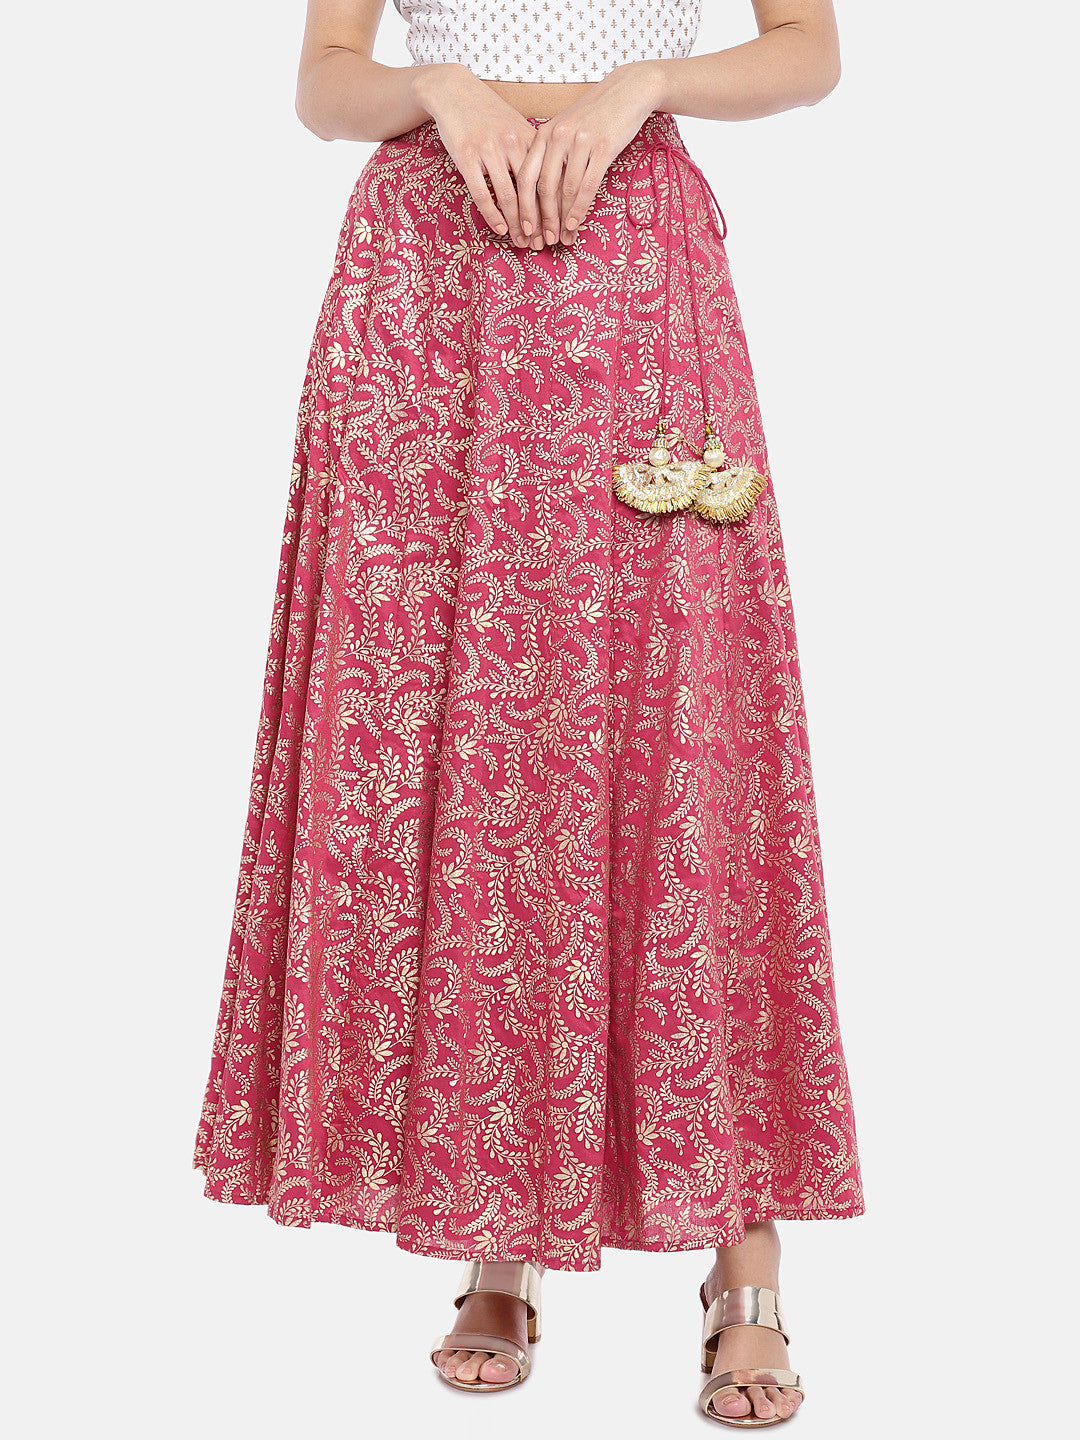 Pink & Gold-Toned Printed Flared Skirt-1